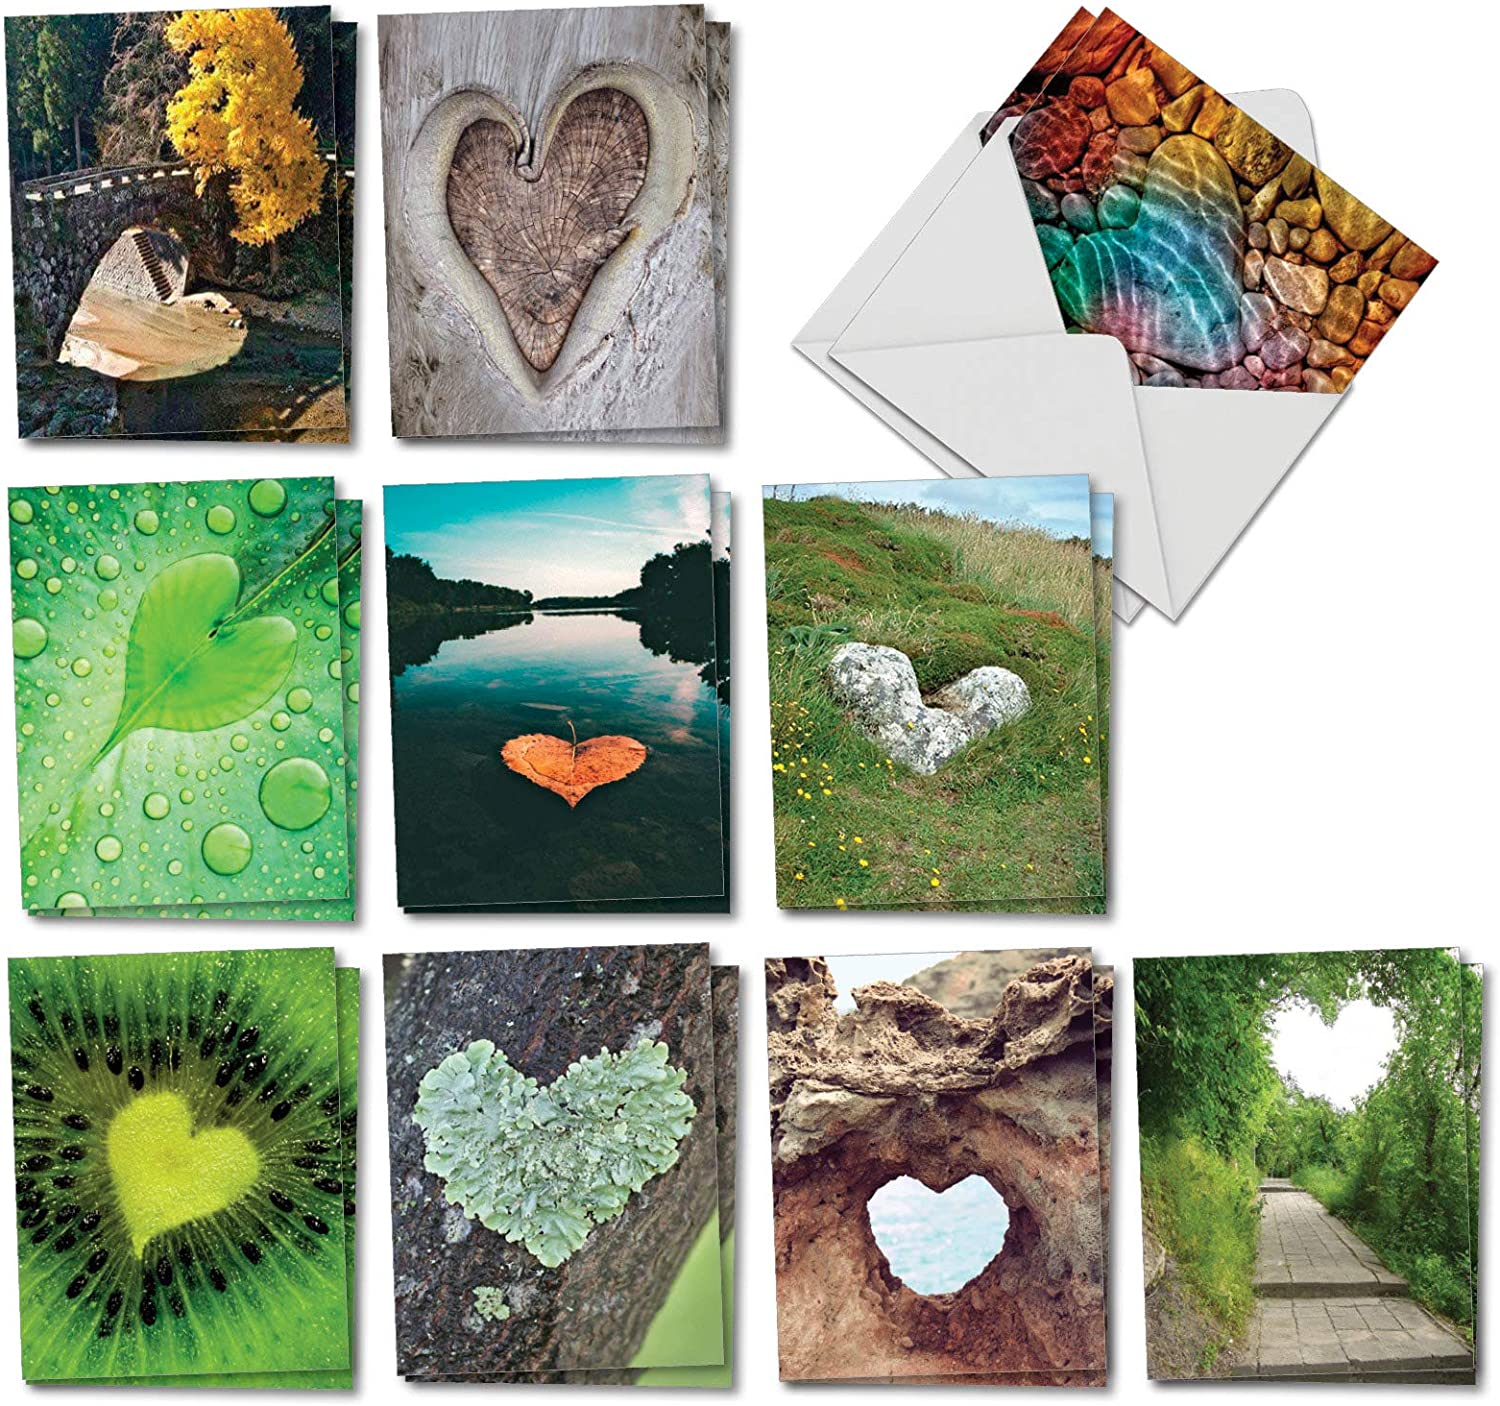 The Best Card Company - 20 Landscape Nature Note Cards Blank (4 x 5.12 Inch) (10 Designs, 2 Each) - Heartscapes AM6838OCB-B2x10